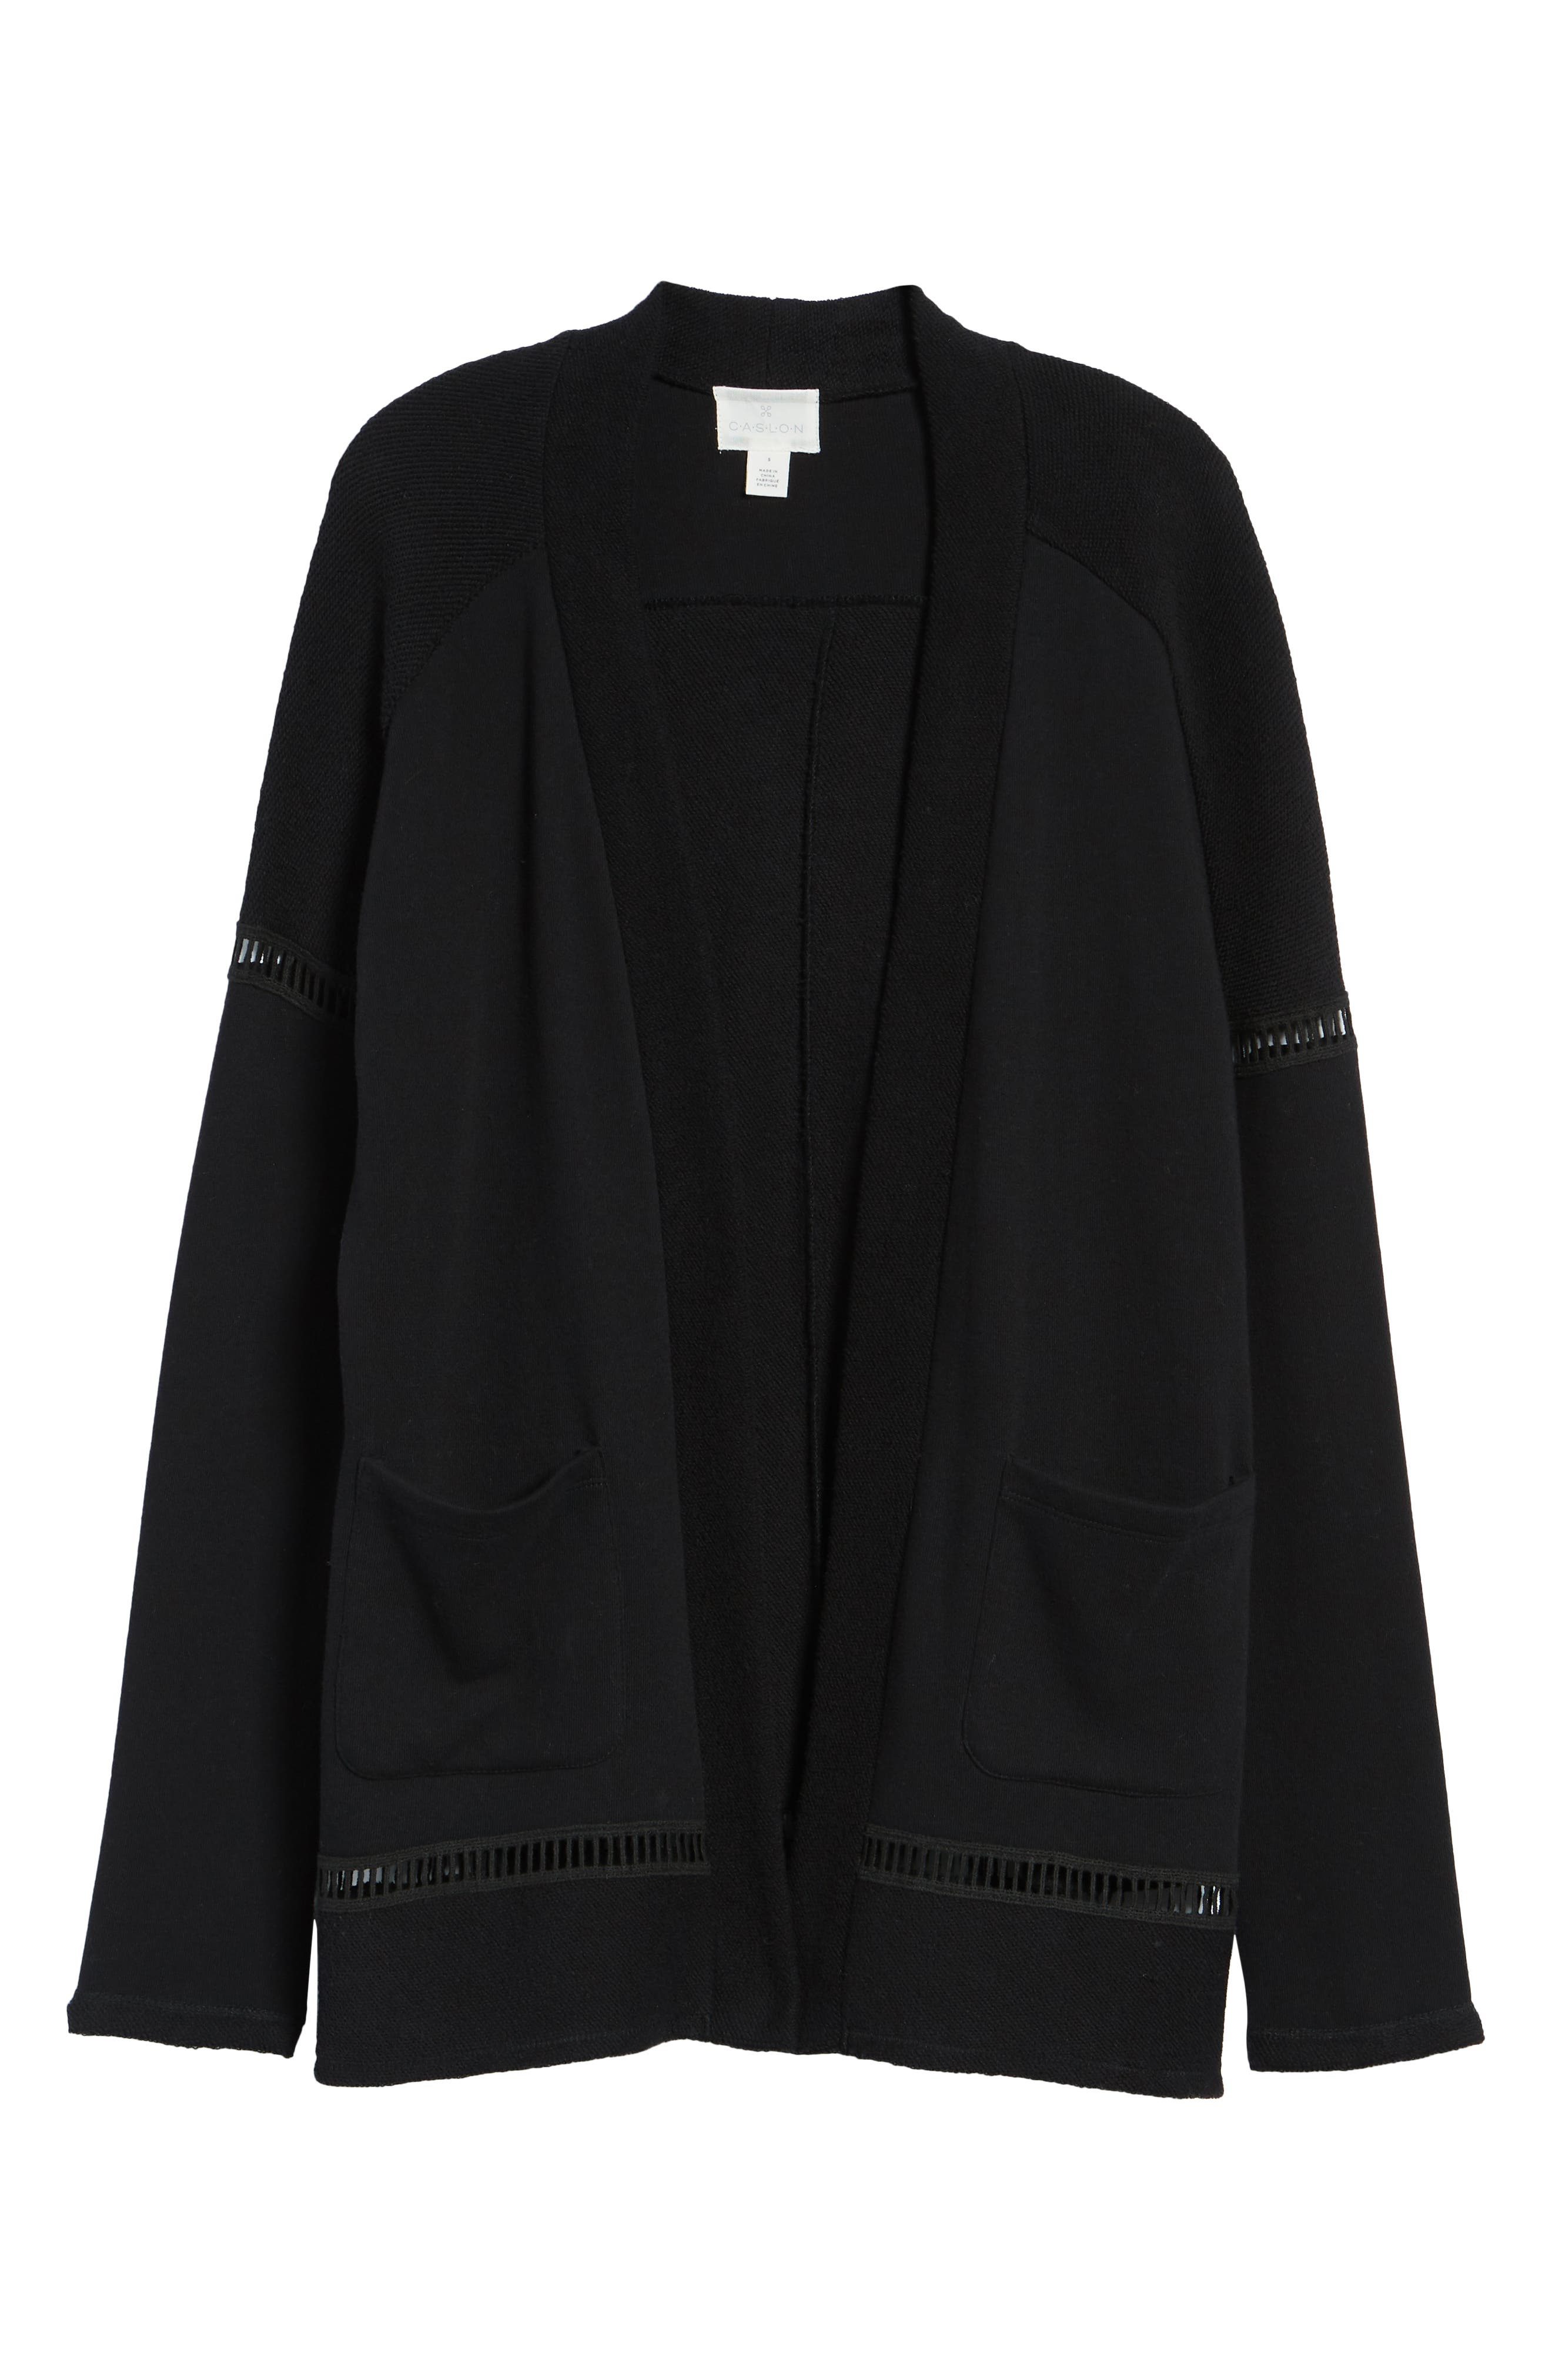 French Terry Open Front Cotton Cardigan,                             Alternate thumbnail 6, color,                             BLACK